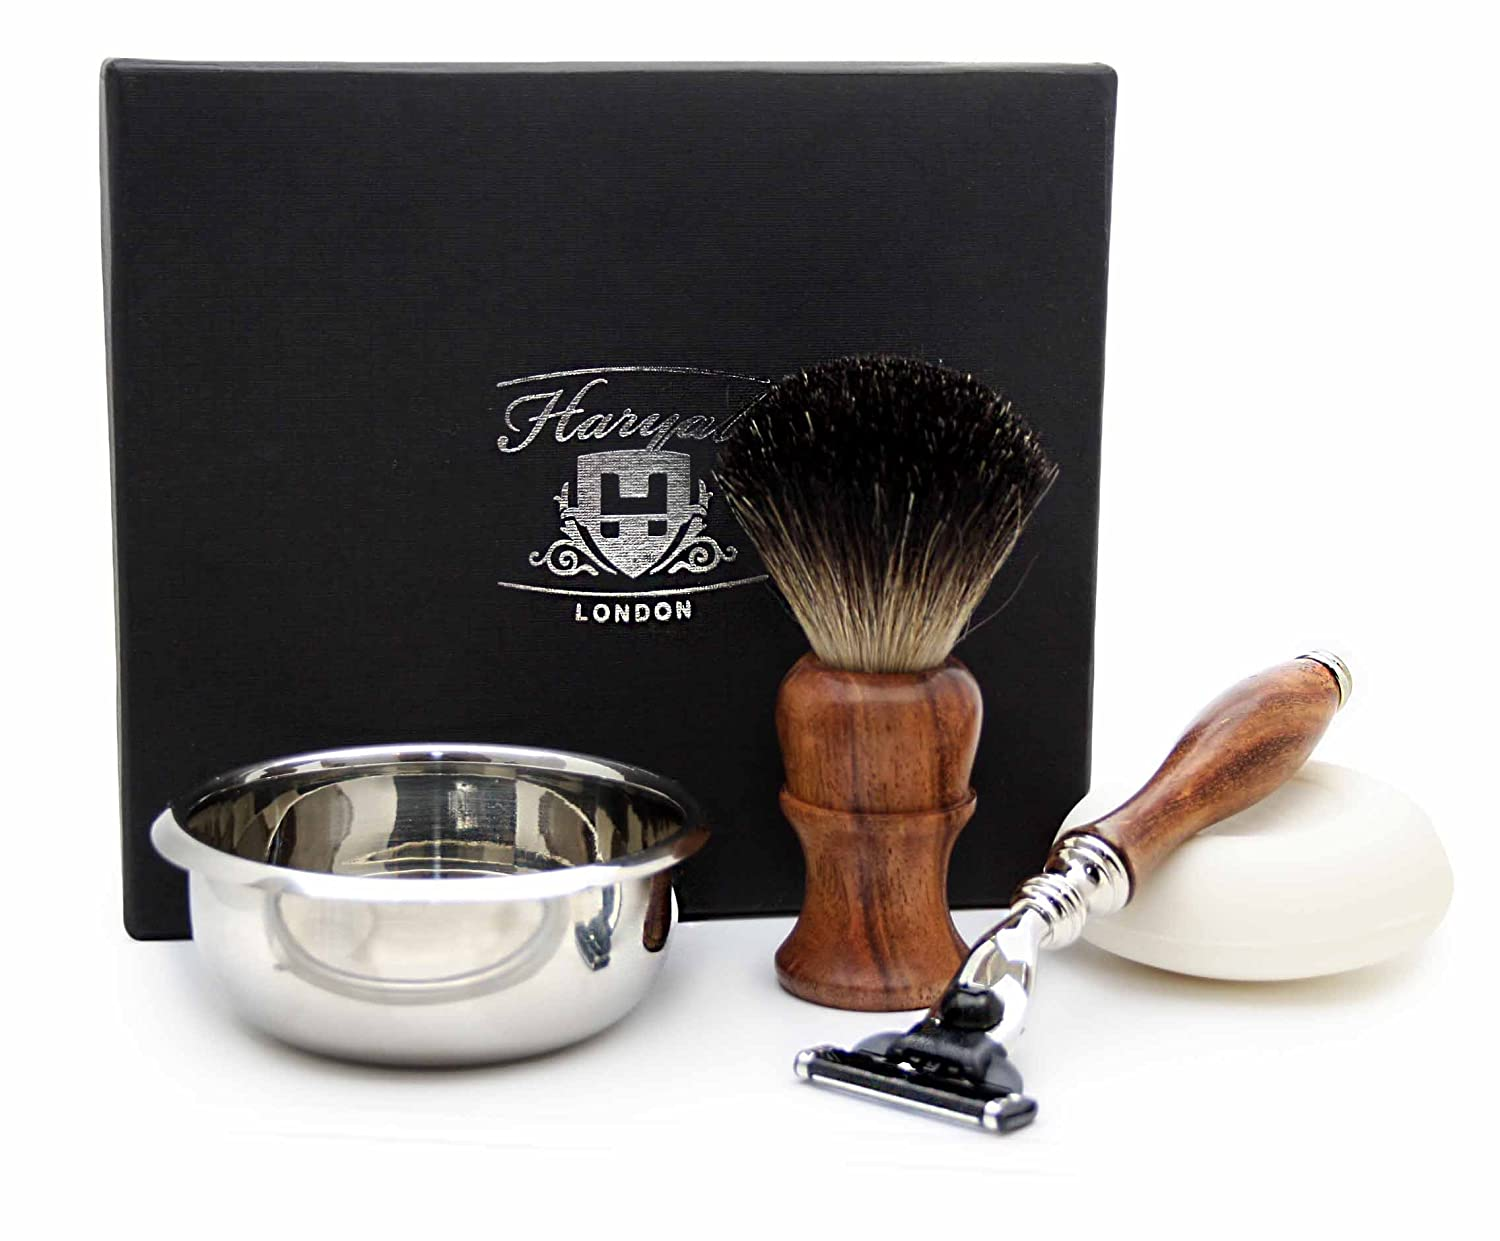 4 PIECES WOODEN SHAVING SET FOR MEN'S GROOMING.THE SET INCLUDES PURE BLACK BADGER HAIR SHAVING BRUSH,GILLETTE MACH 3 RAZOR, BOWL & FREE SOAP. PERFECT AS A GIFT THIS CHRISTMAS FOR HM.SPECIAL EDITION. HARYALI LONDON